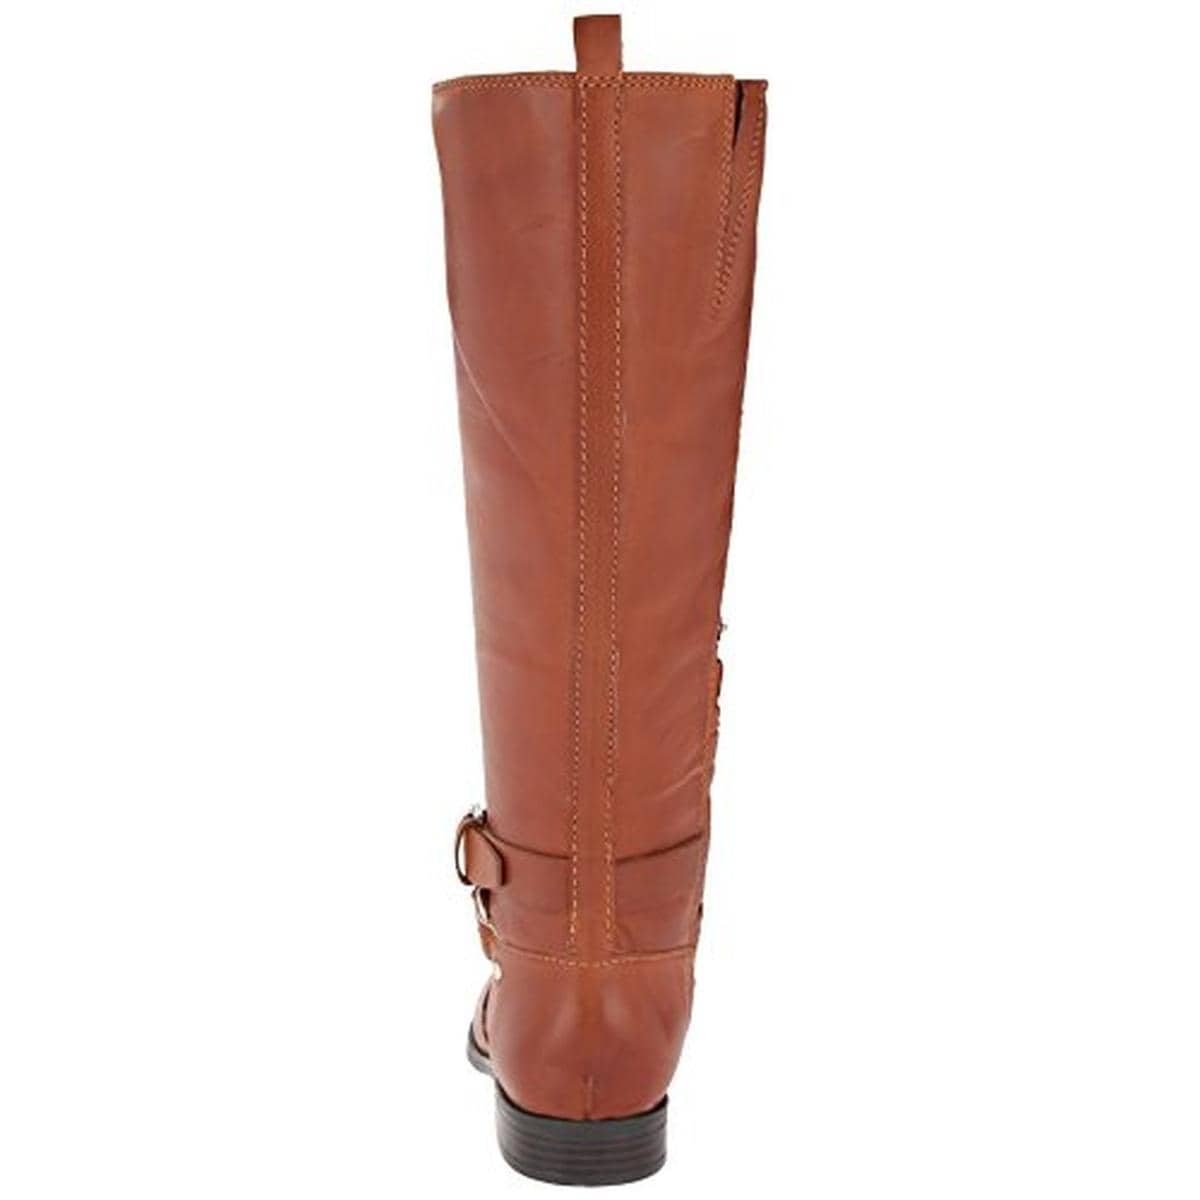 9d2658b07dbd Shop Enzo Angiolini Womens Daniana Riding Boots Leather Knee High - Free  Shipping On Orders Over  45 - Overstock - 13870777